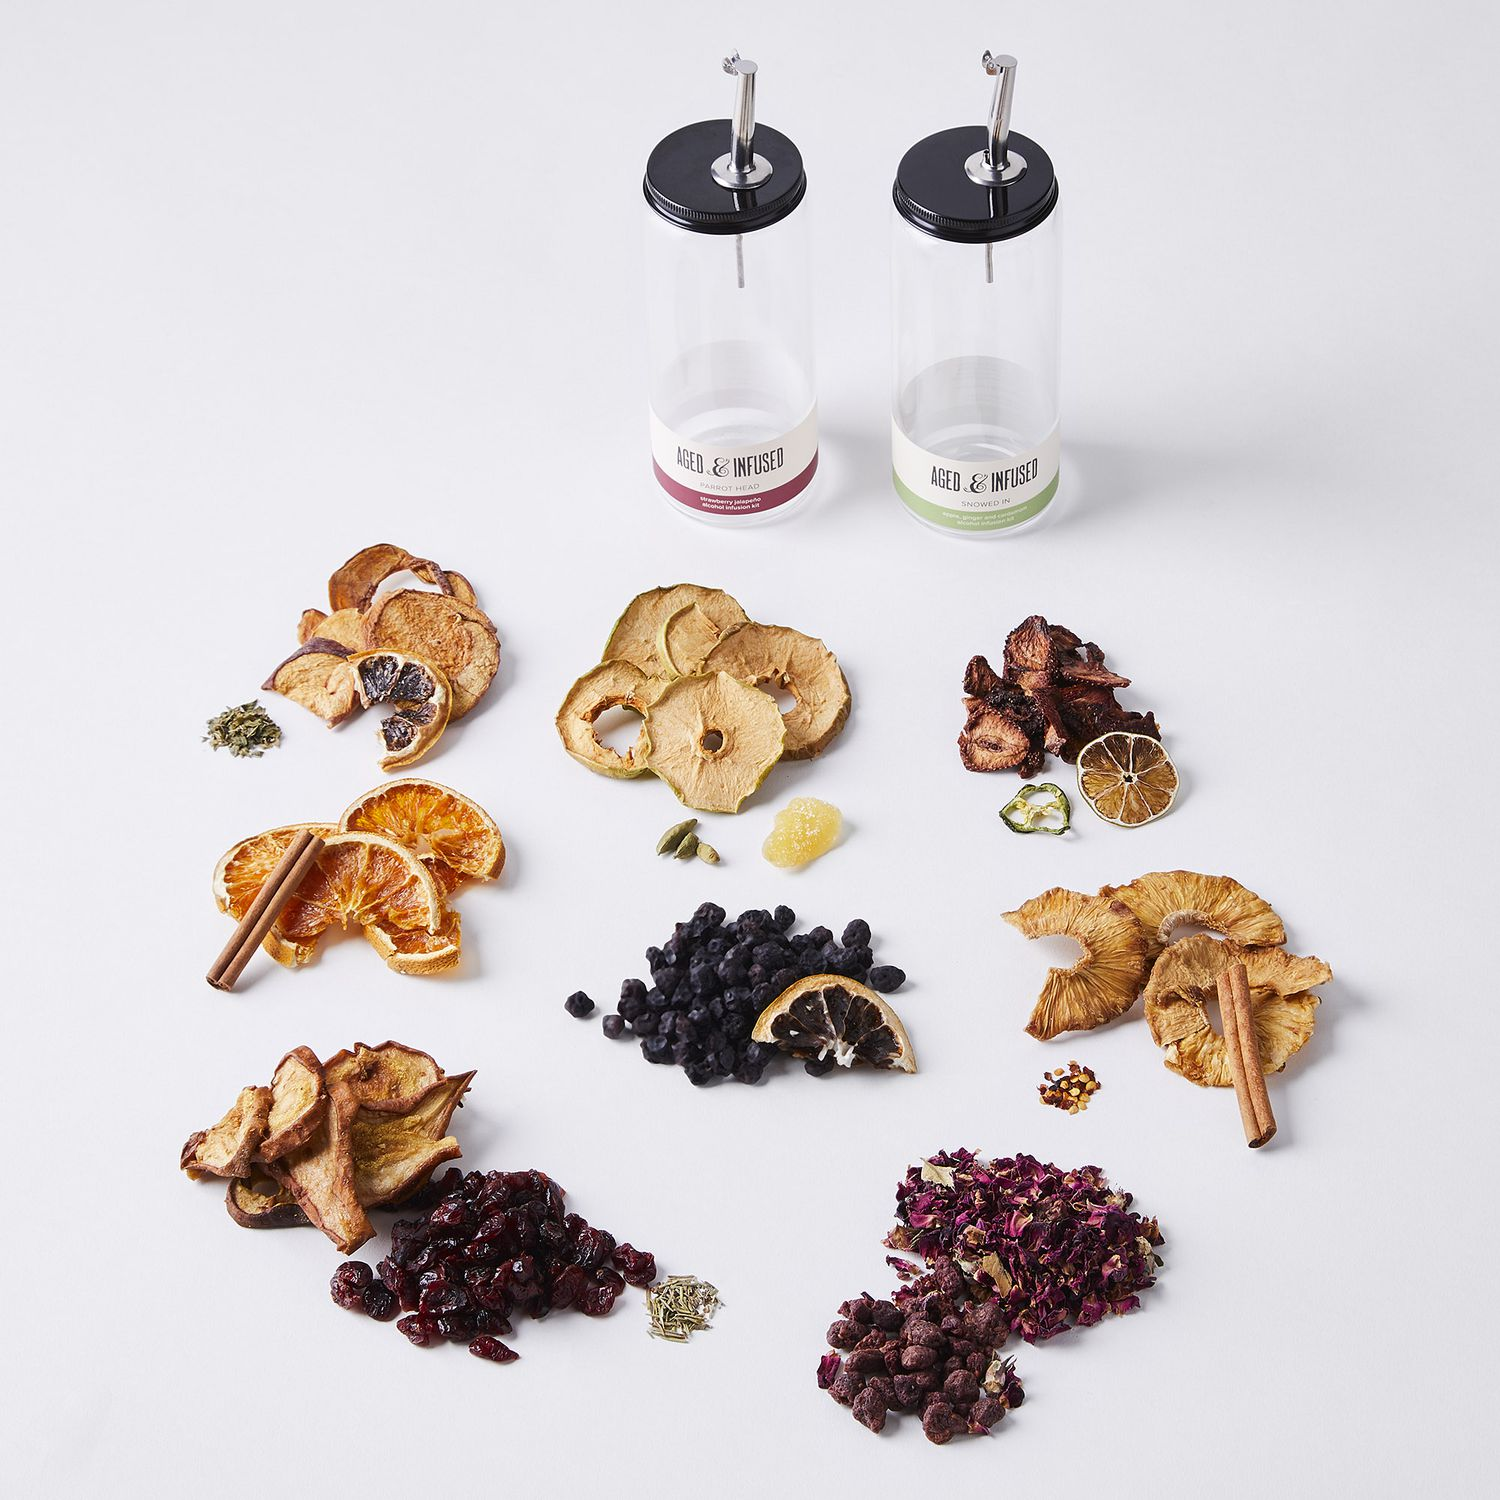 Liquor Infusion Seasonal Subscription by Gifter World